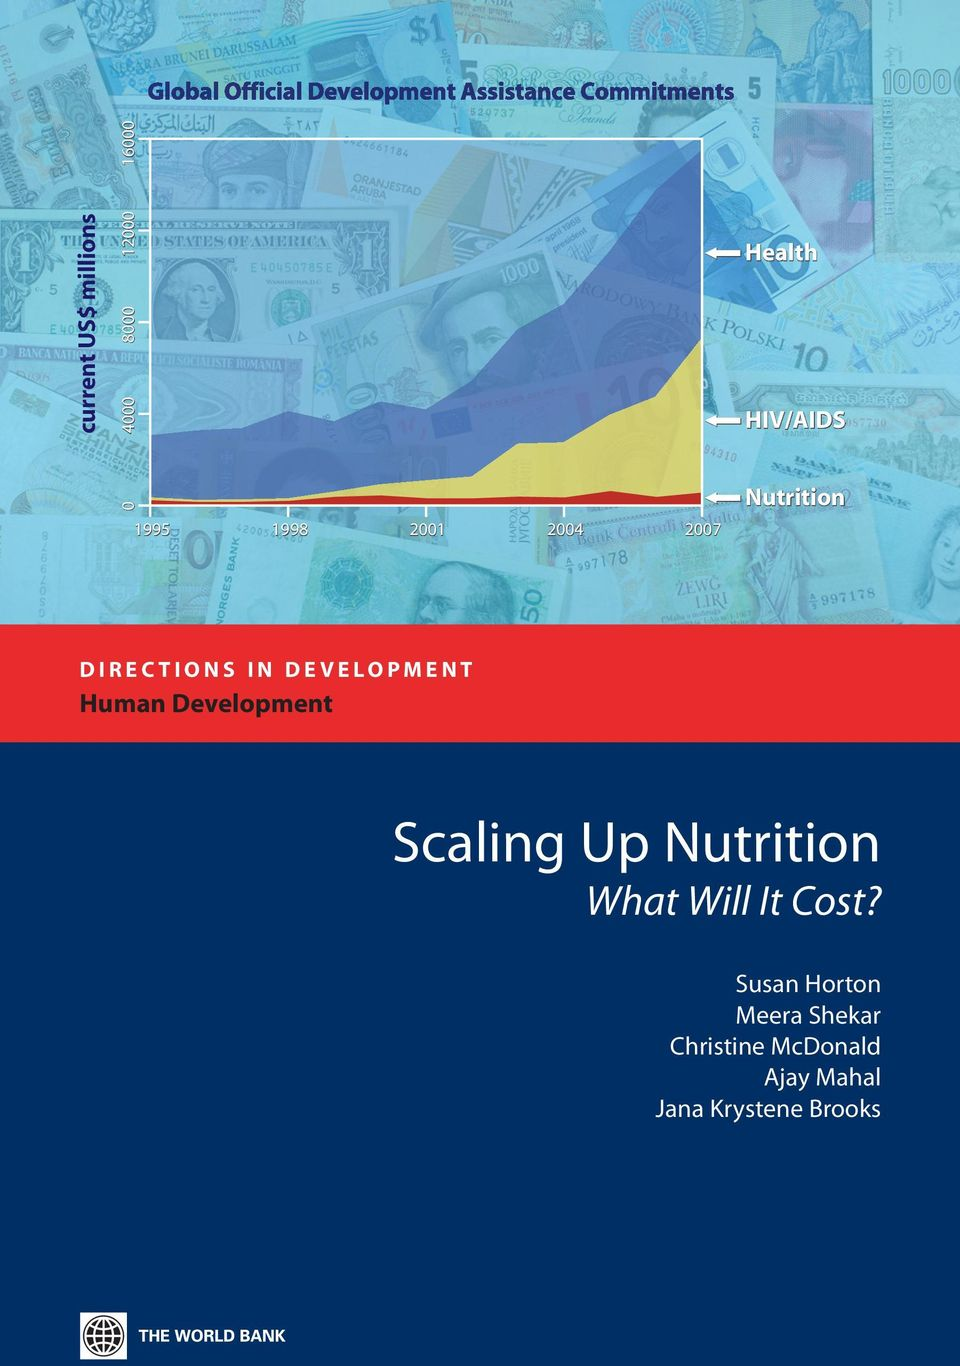 Human Development Scaling Up Nutrition What Will It Cost?